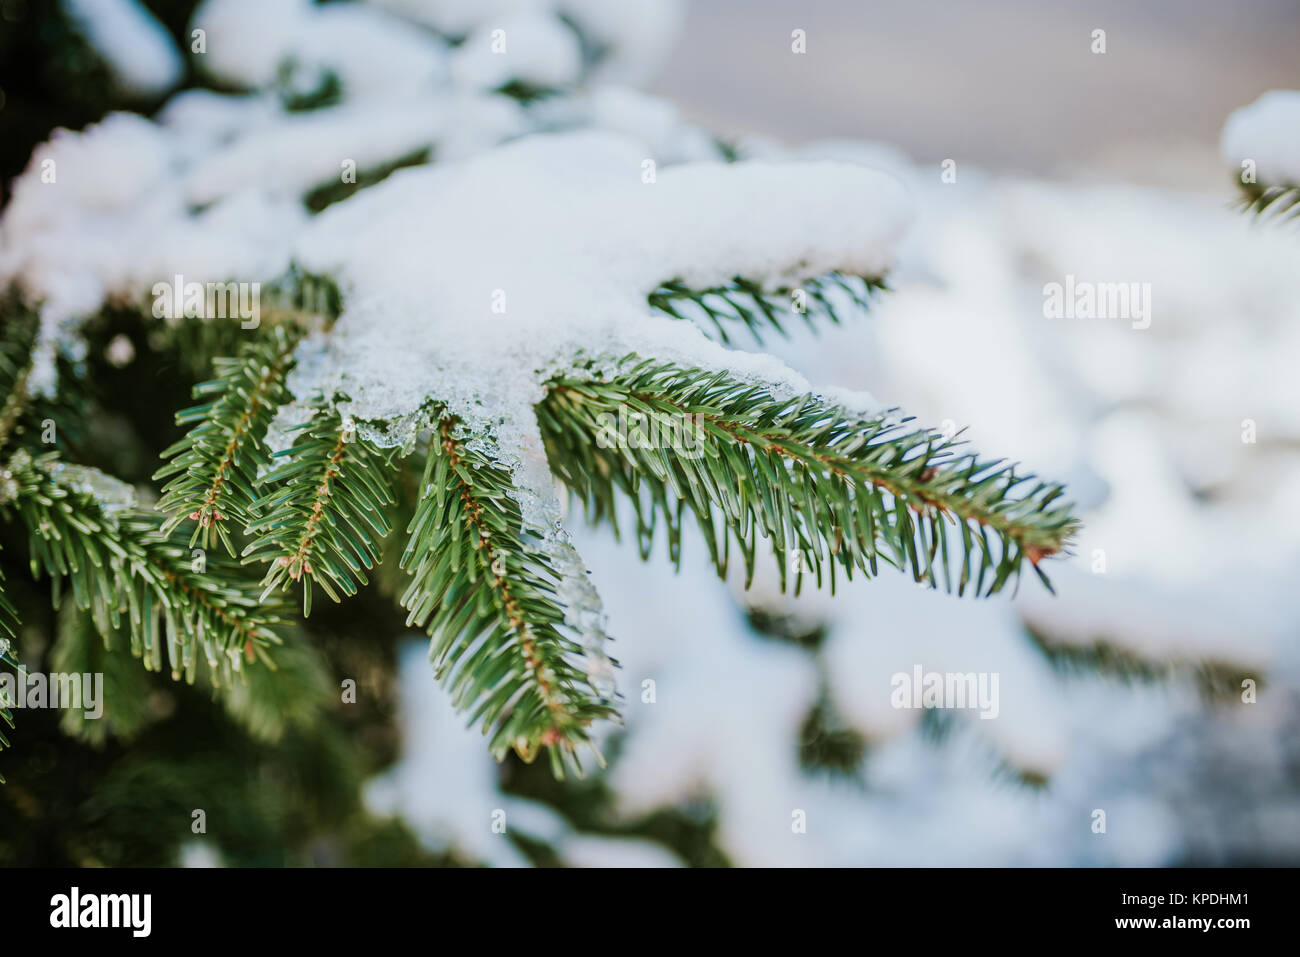 Green fir tree branch covered with snow - Stock Image